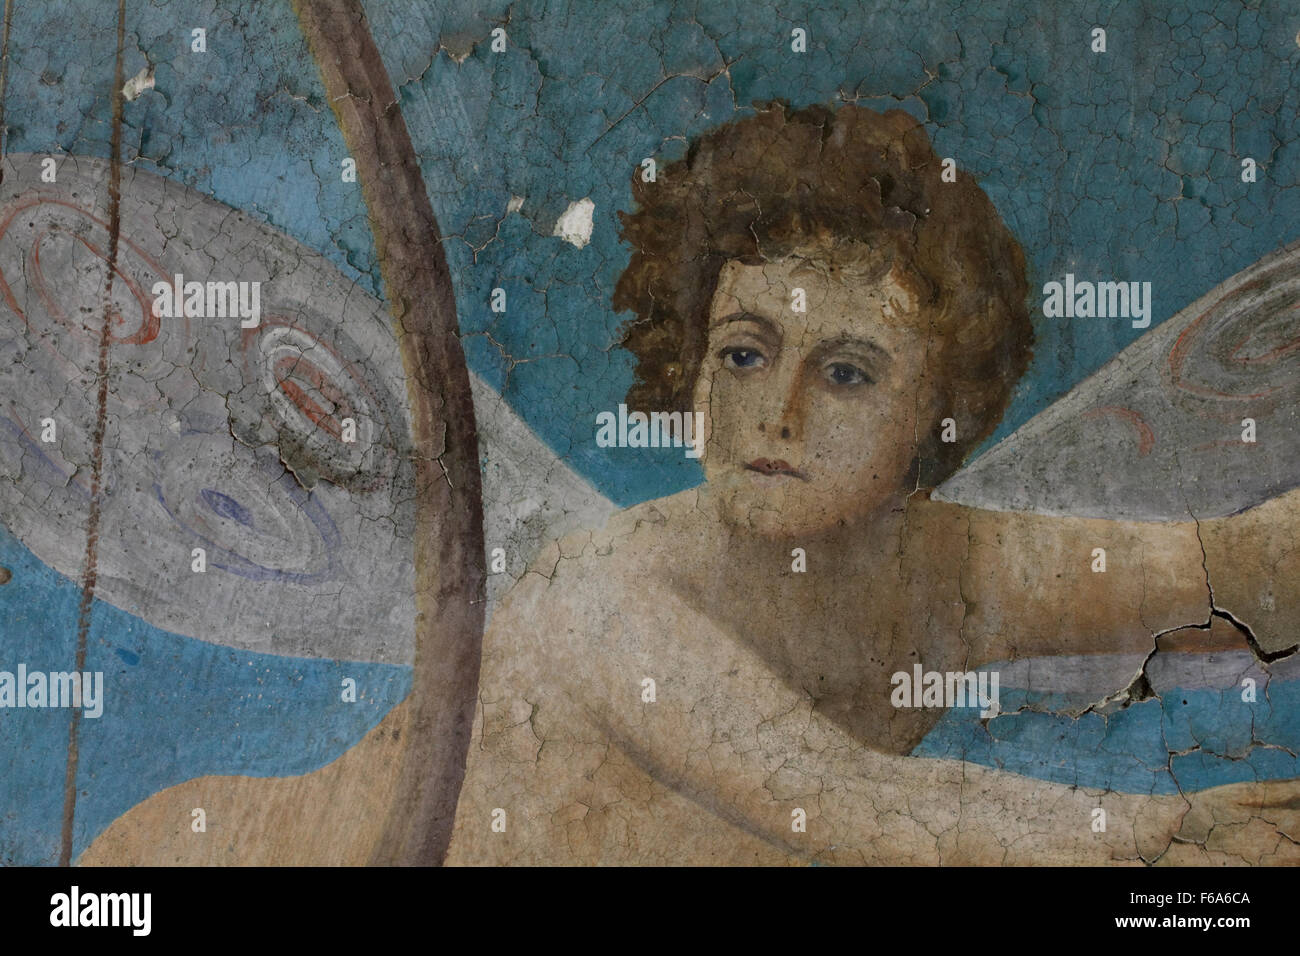 The decrepit flying angelic character part of the wallpainting's composition,entitled 'Artemis' by M. - Stock Image